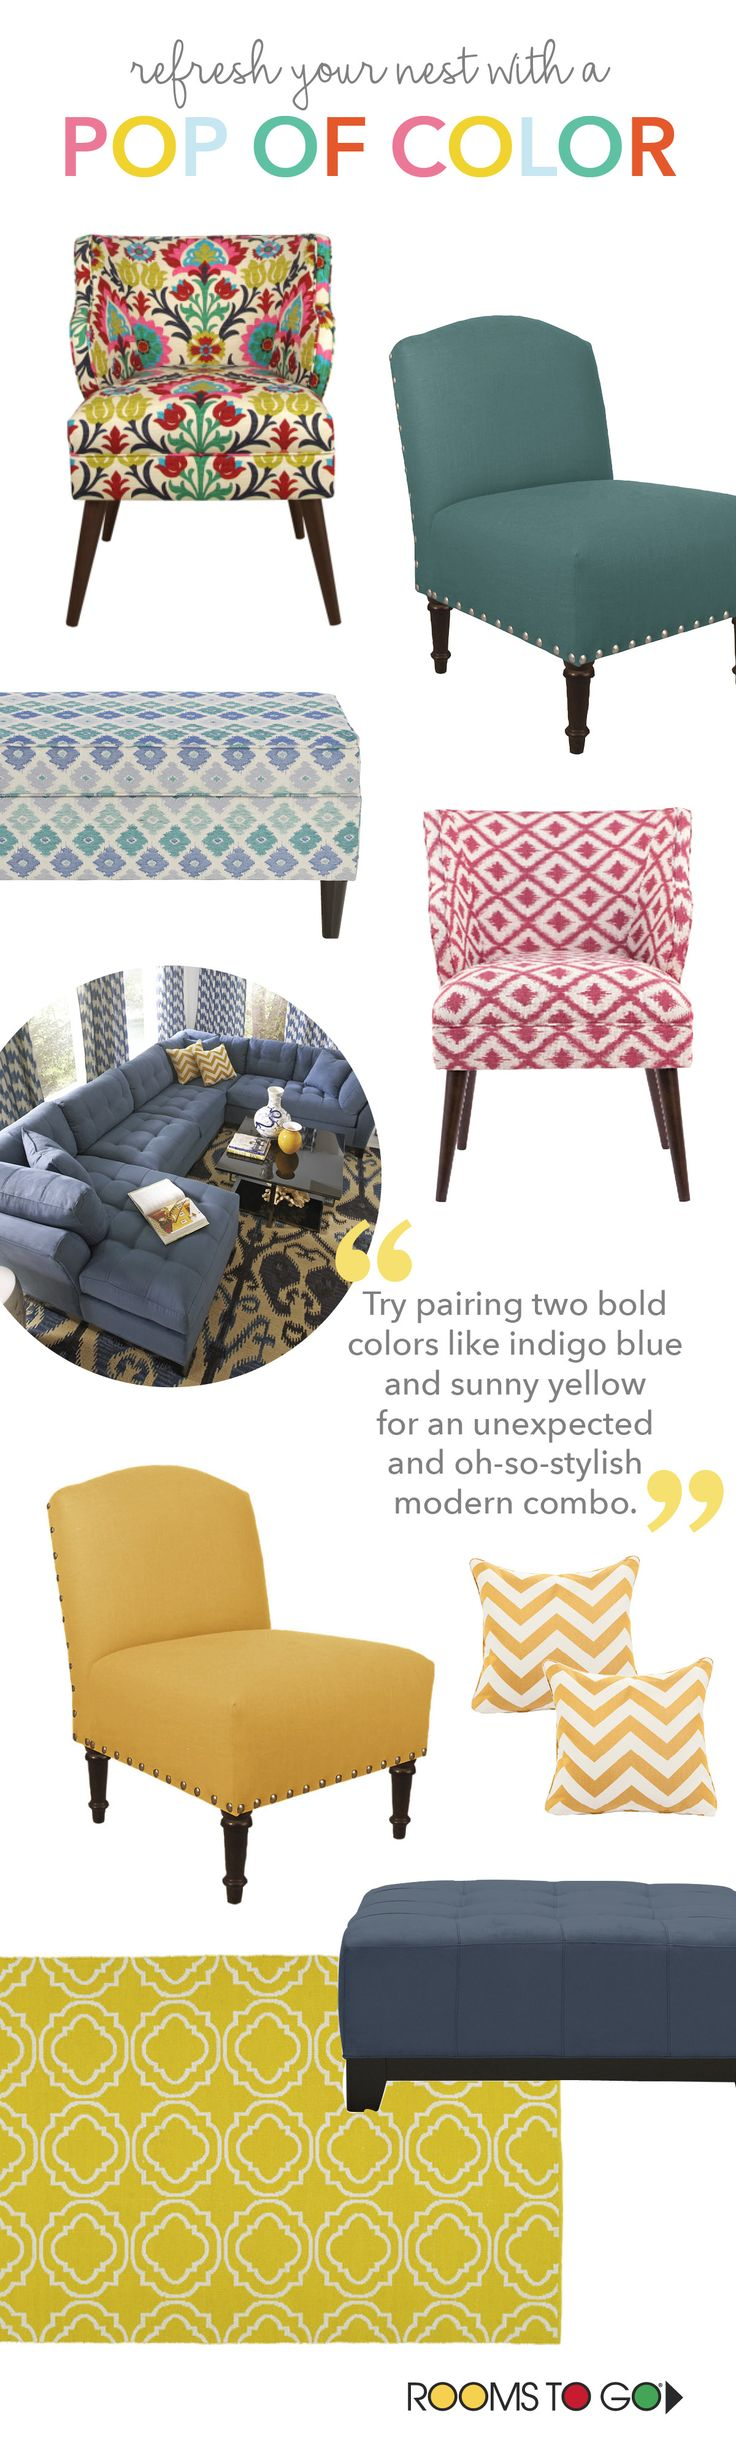 With designs that range from classic and simple to bold and modern, there's a Rooms To Go decorative chair for any style preference.